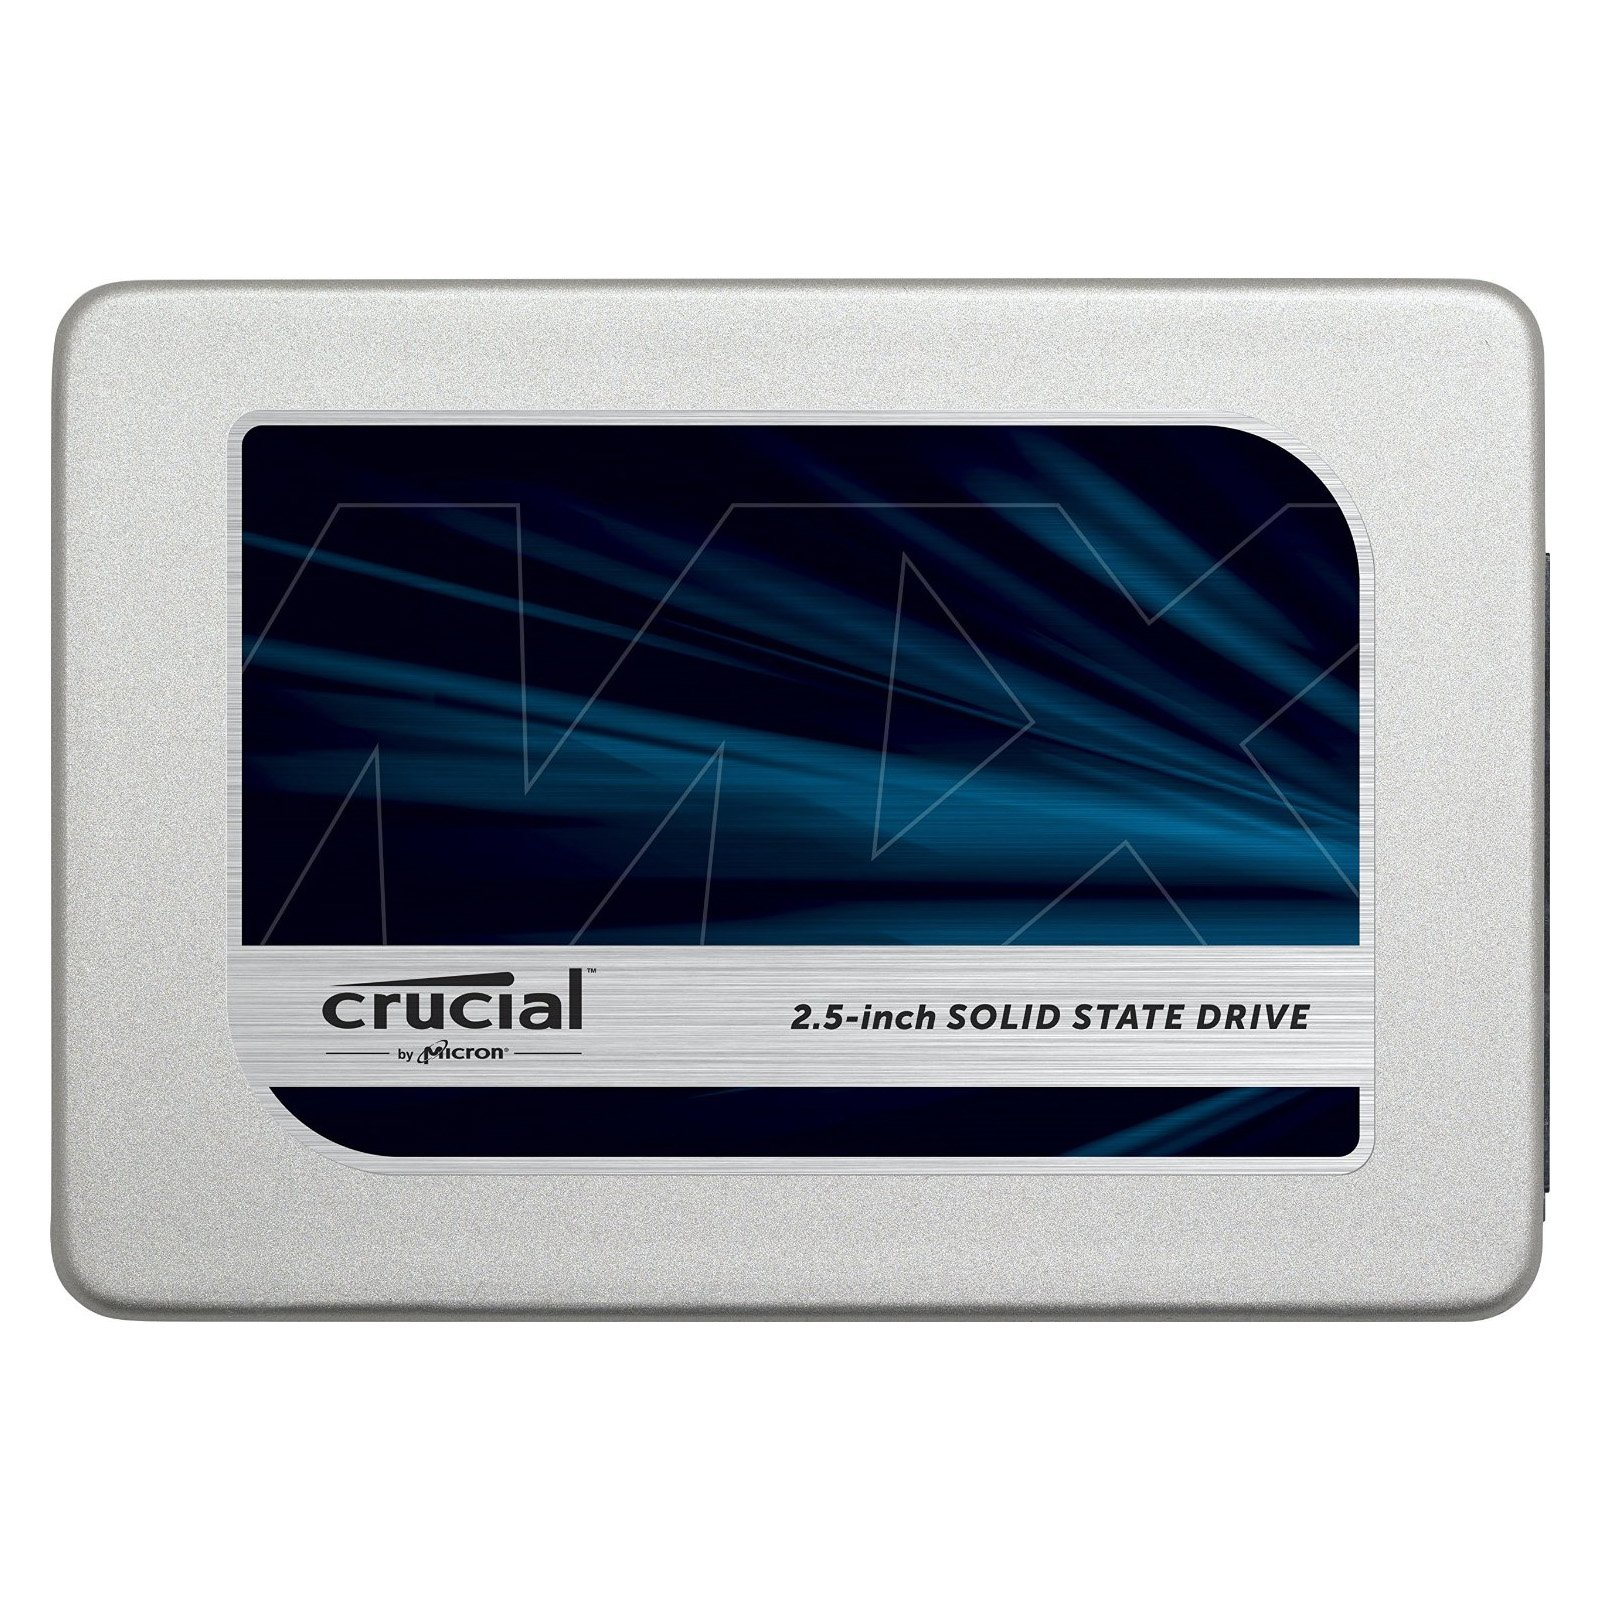 Crucial MX300 275GB SATA 2.5 Inch Internal Solid State Drive - CT275MX300SSD1 by Crucial